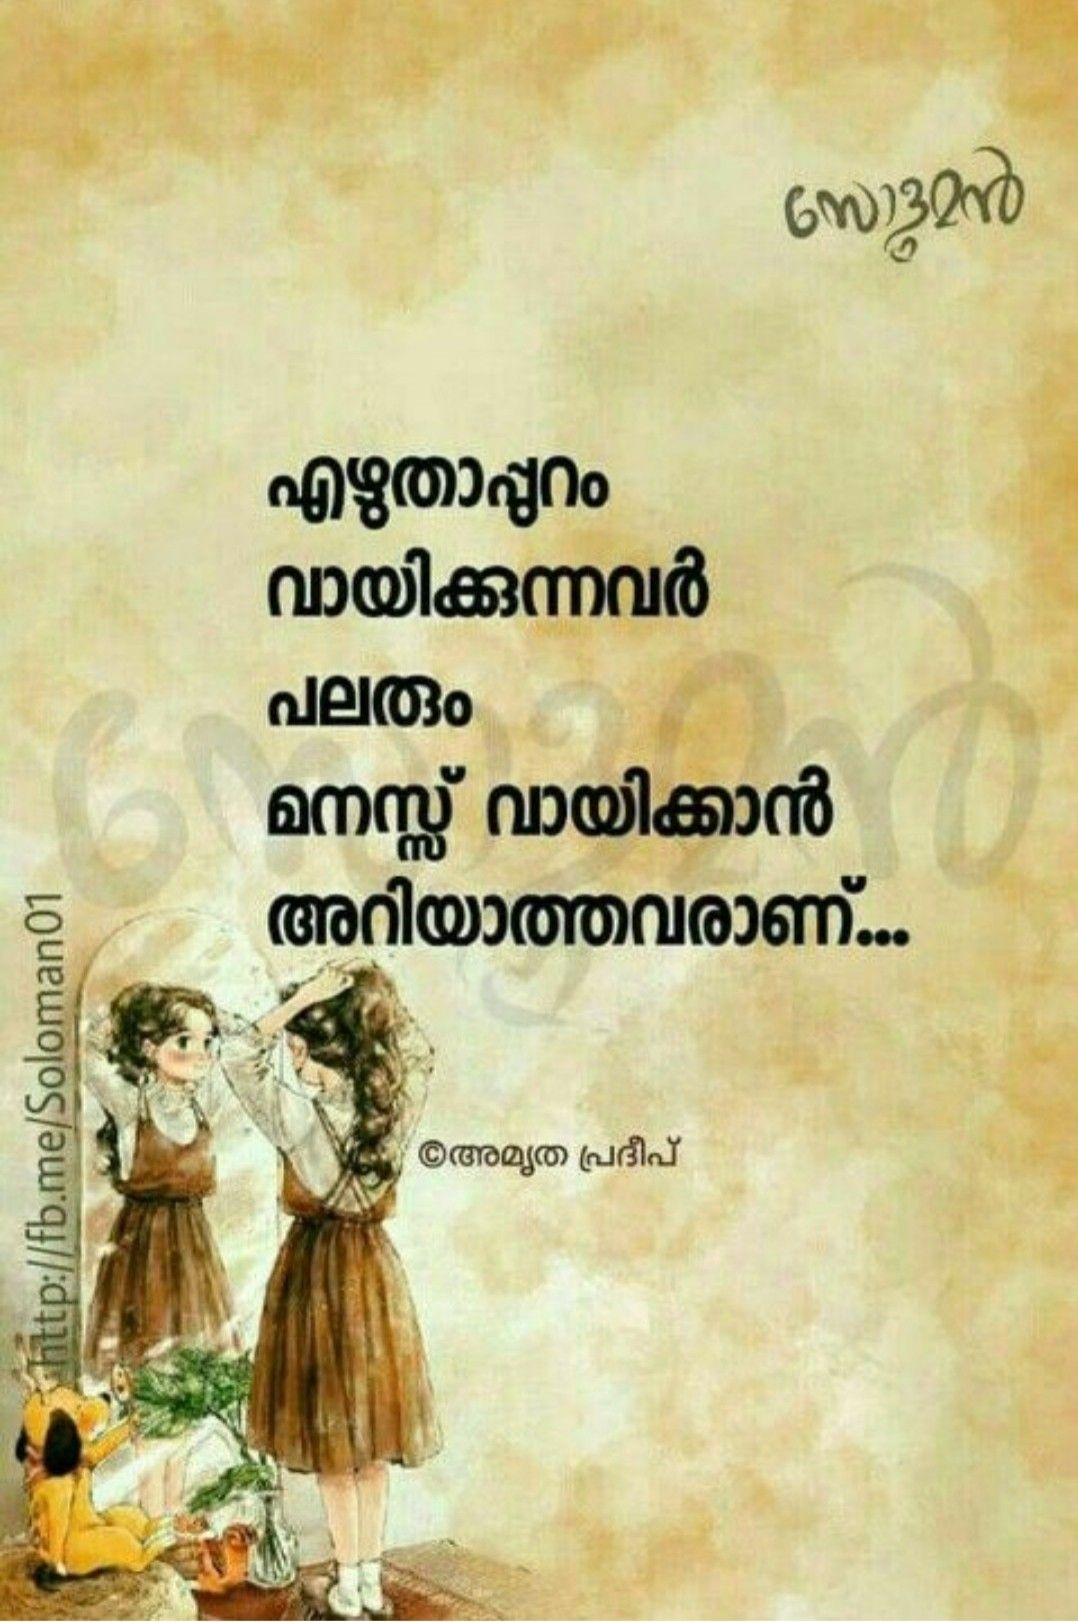 Pin by Aaradhya on മലയാളം  Life is beautiful quotes